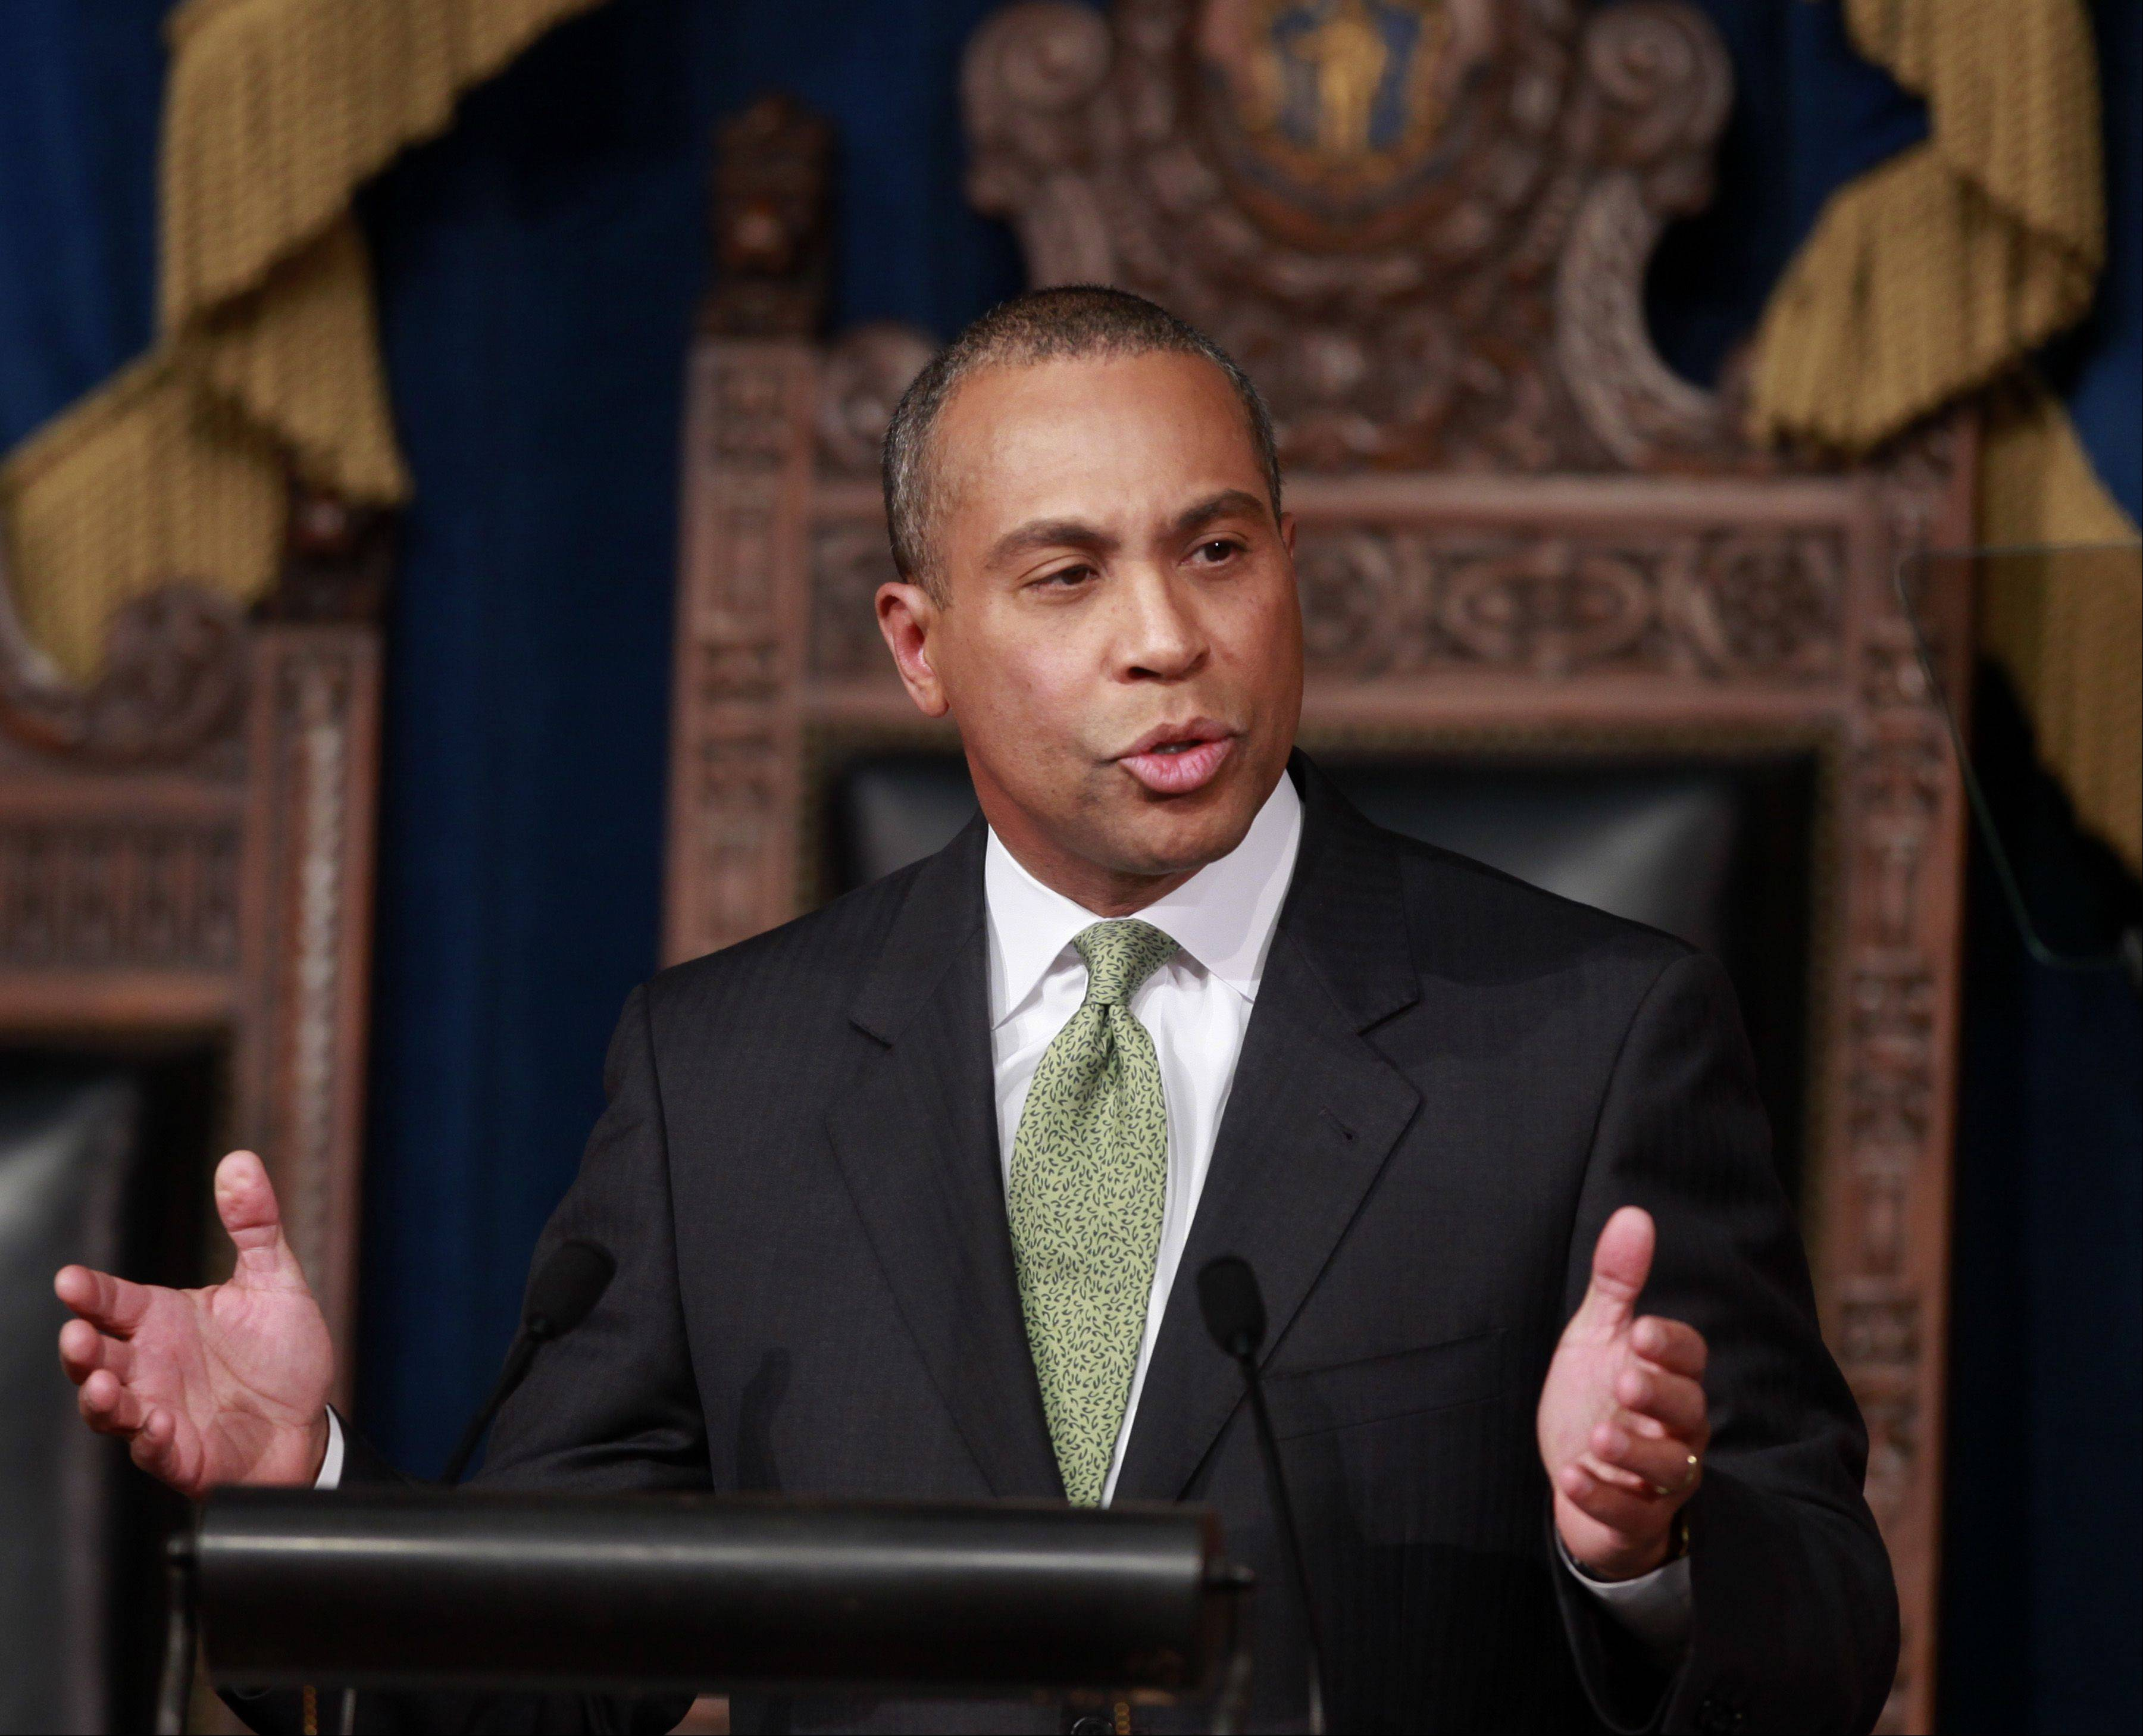 Massachusetts Gov. Deval Patrick)